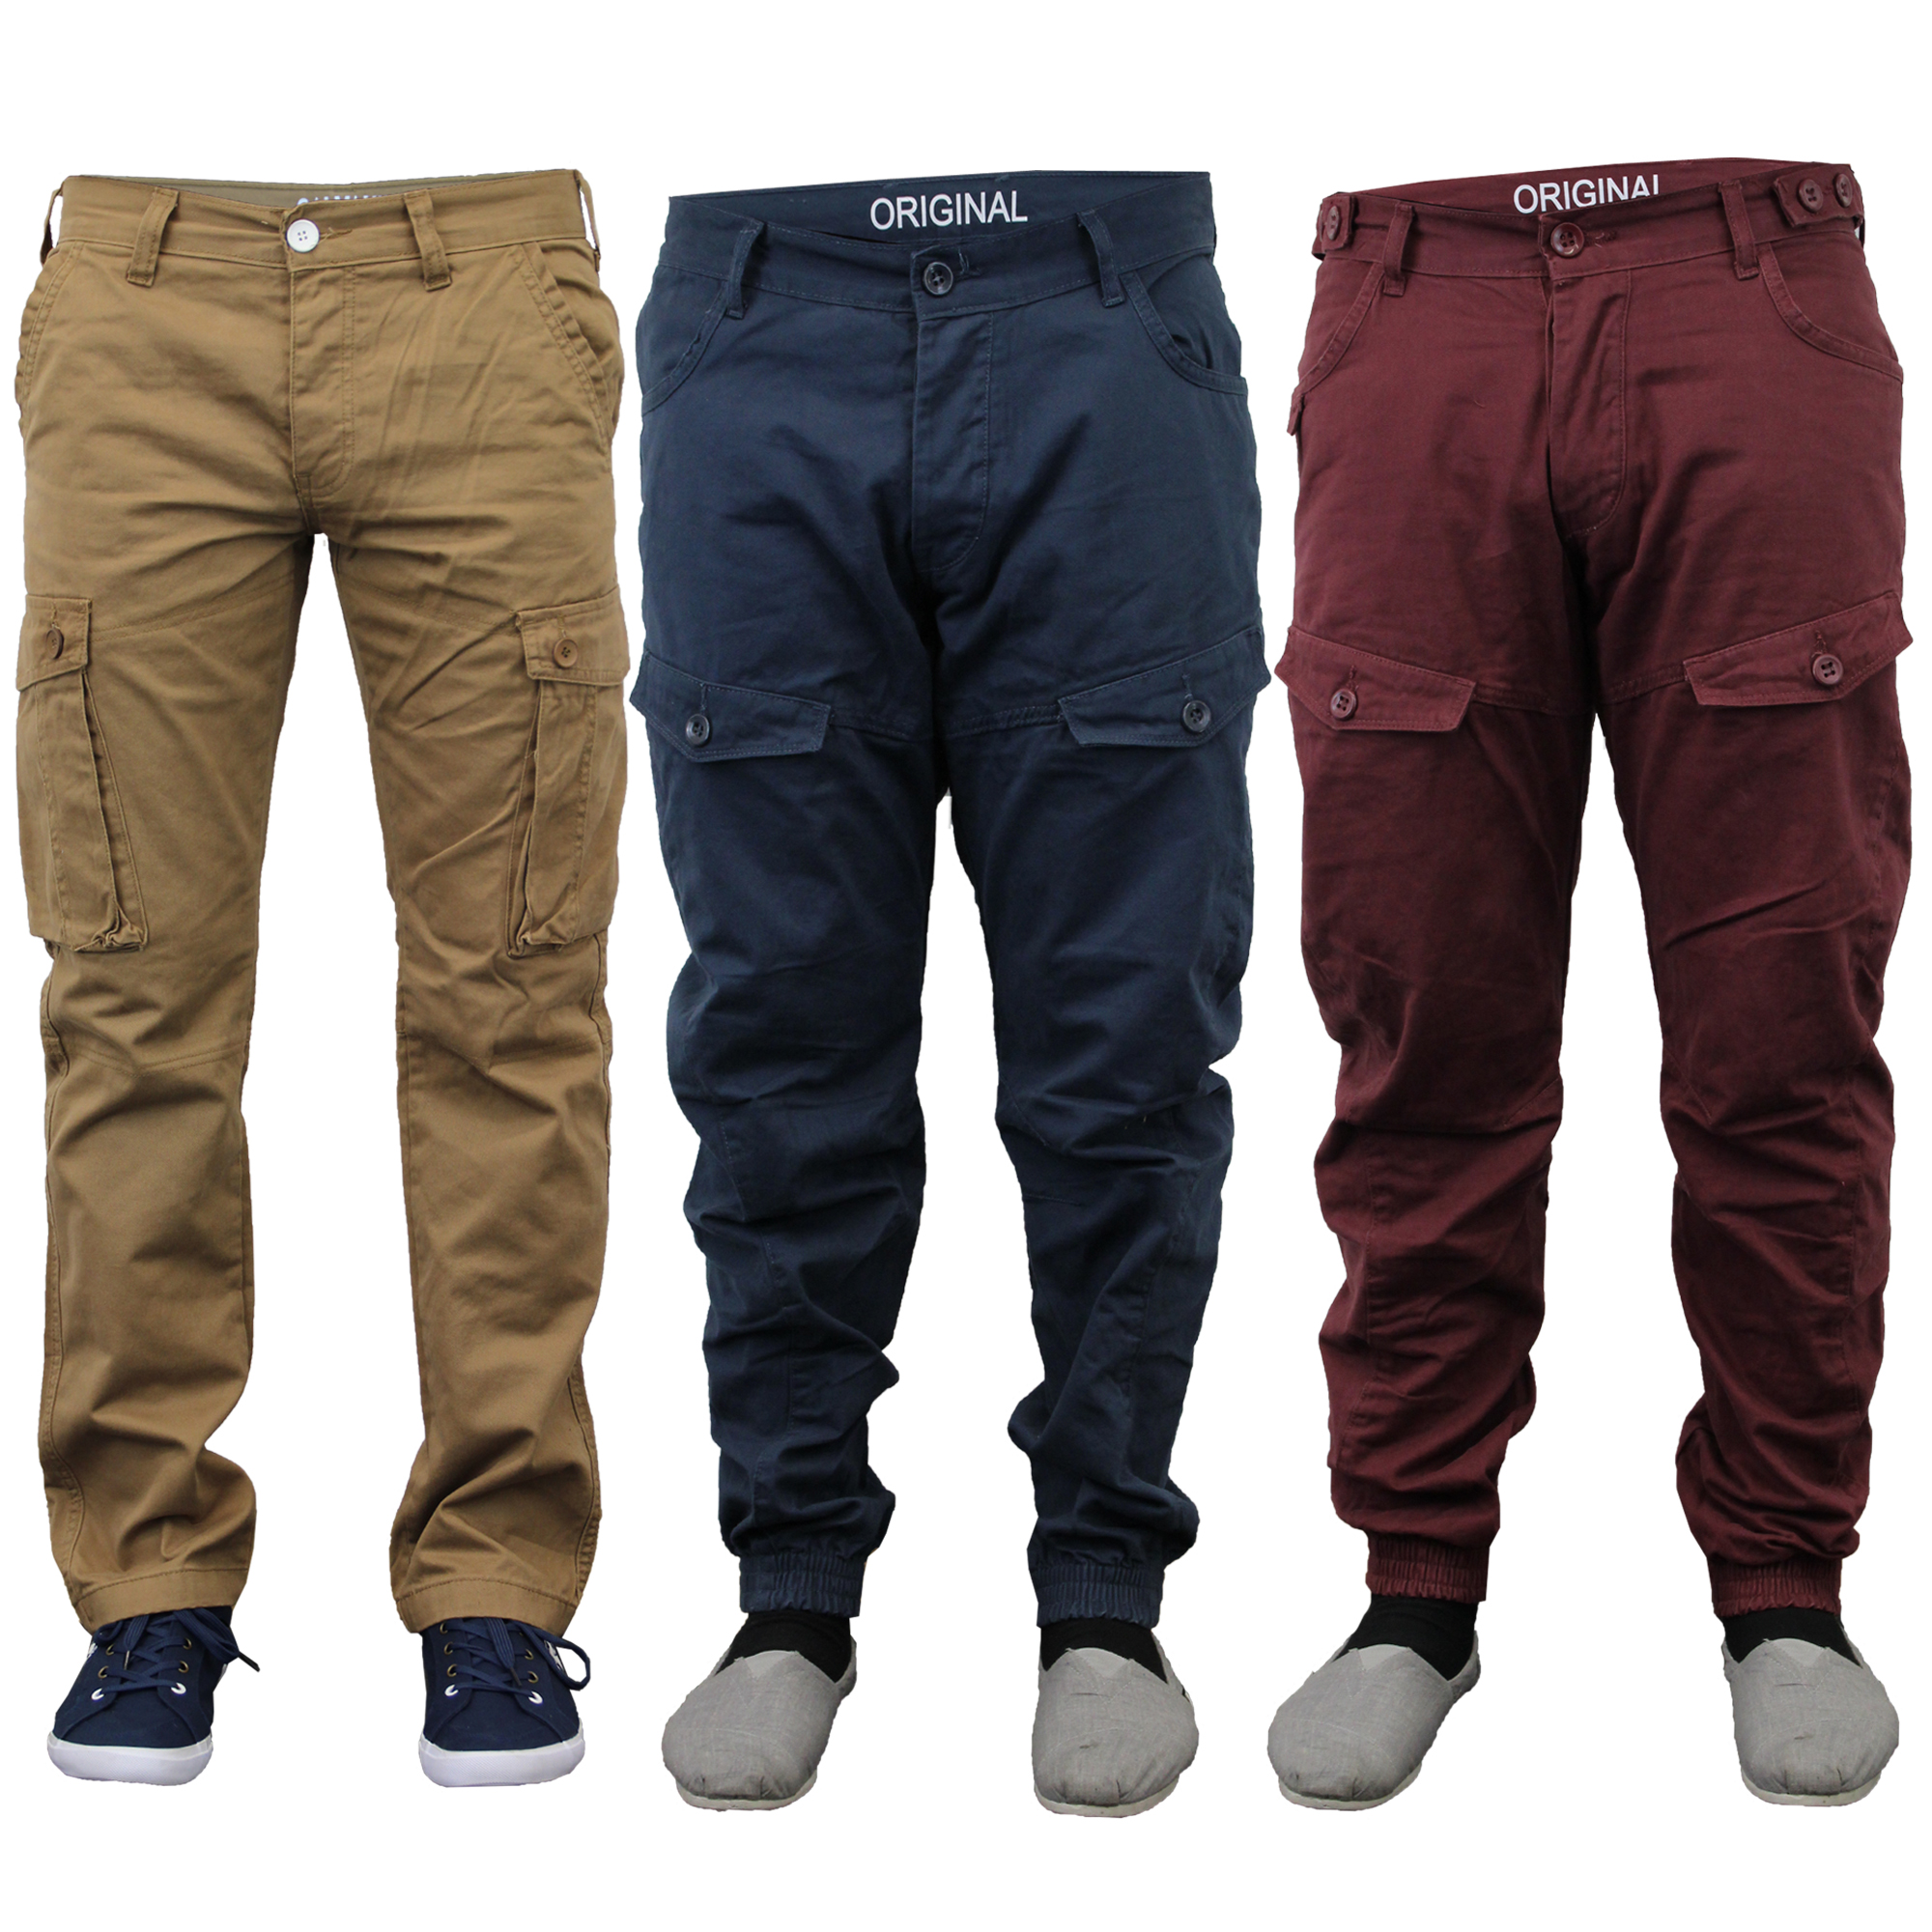 Men's Jeans & Pants. Shop guys jeans and mens pants by fit, wash, color, and size including dark wash denim, skinny jeans, slim fit khakis, skinny black and grey pants, and .